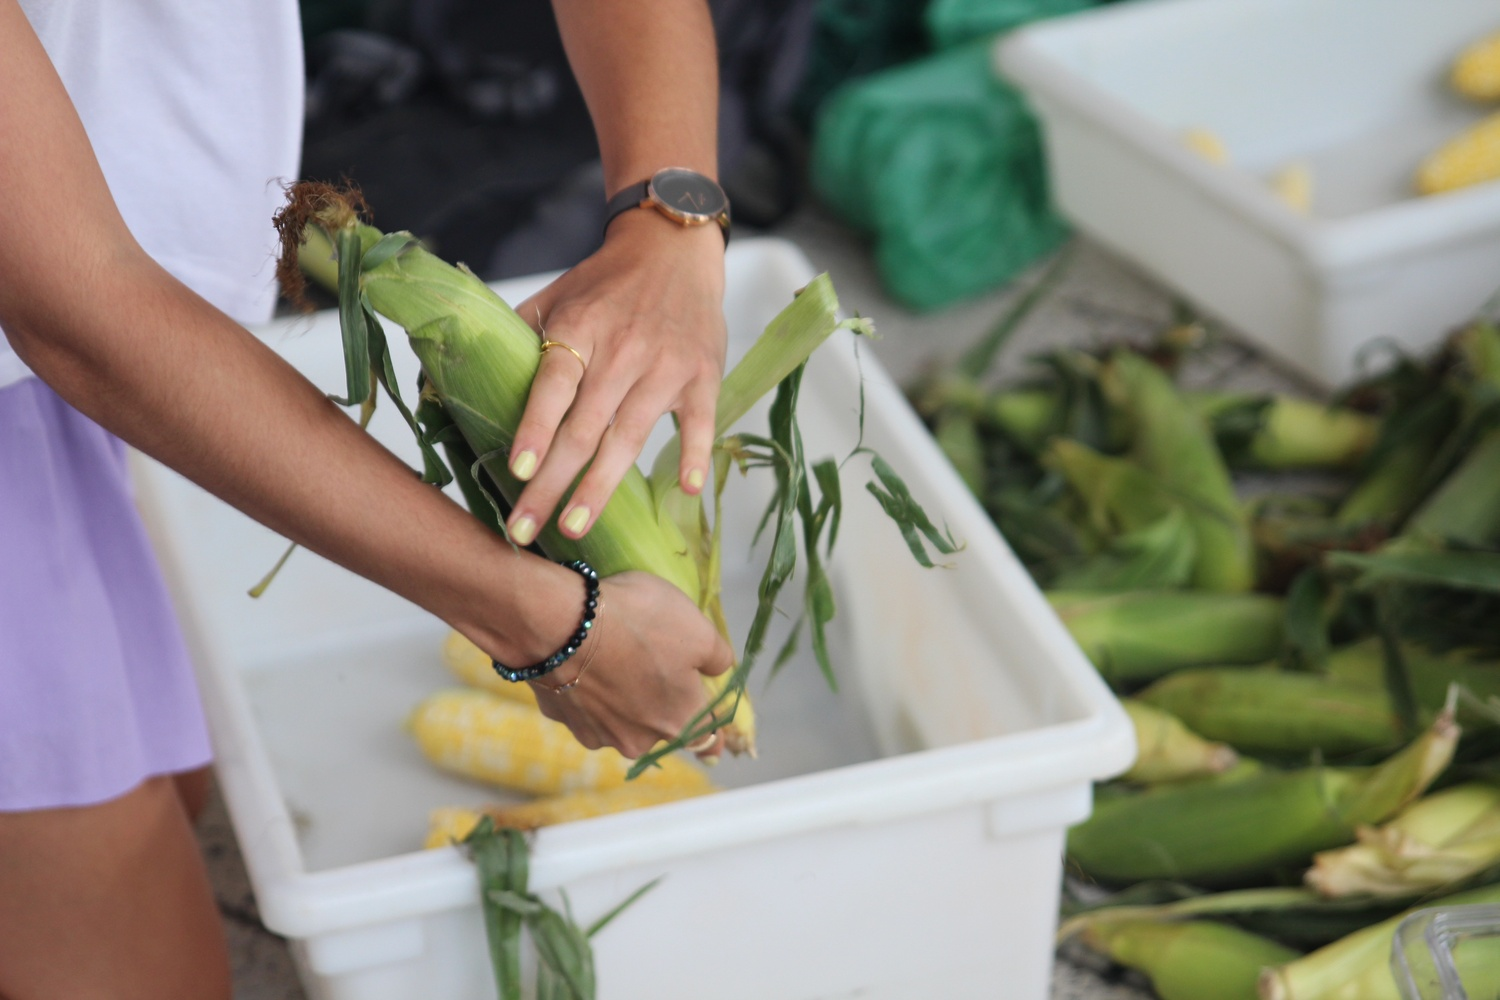 Students compete in the Harvard 'Shuck Off' at the Farmers' Market in the Science Center Plaza on Tuesday afternoon. The winners of the competition won fresh corn for their dining halls.